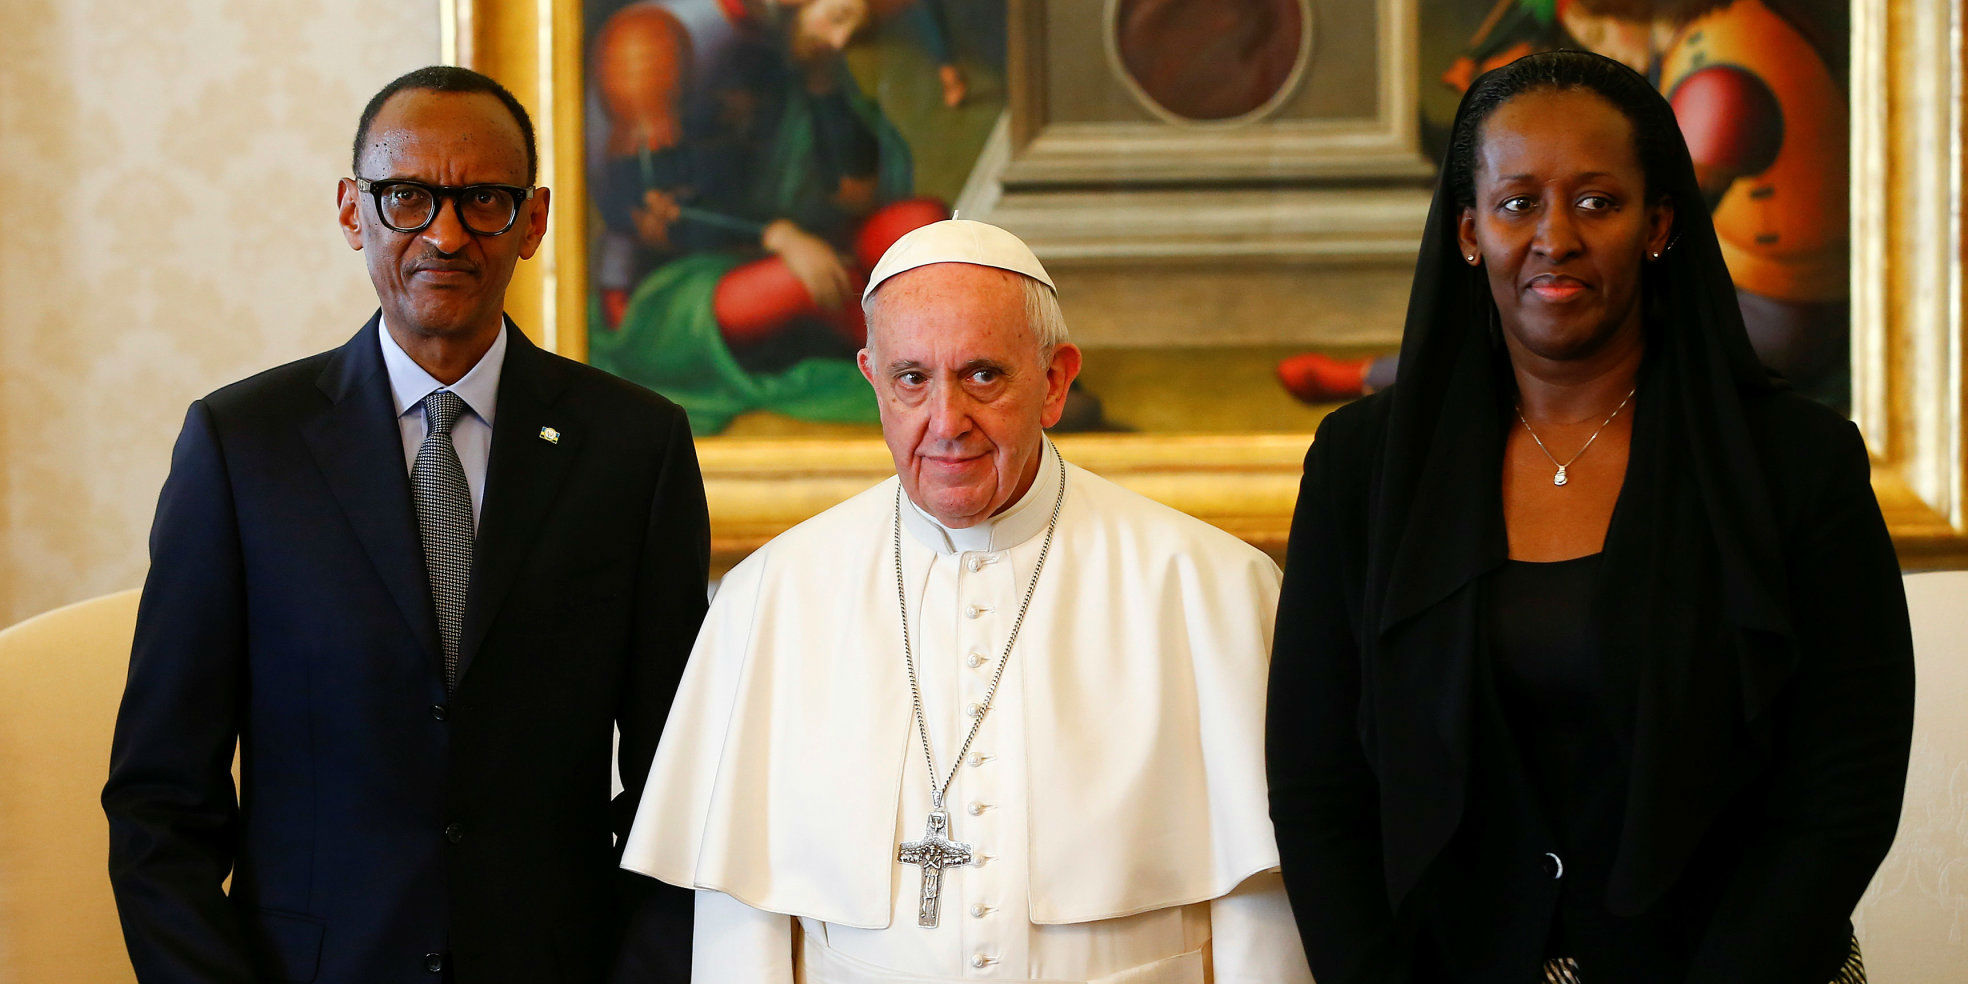 Pope Francis poses with Rwanda's President Paul Kagame and his wife Jeannette during a private meeting at the Vatican March 20, 2017. Credit: Reuters/Tony Gentile